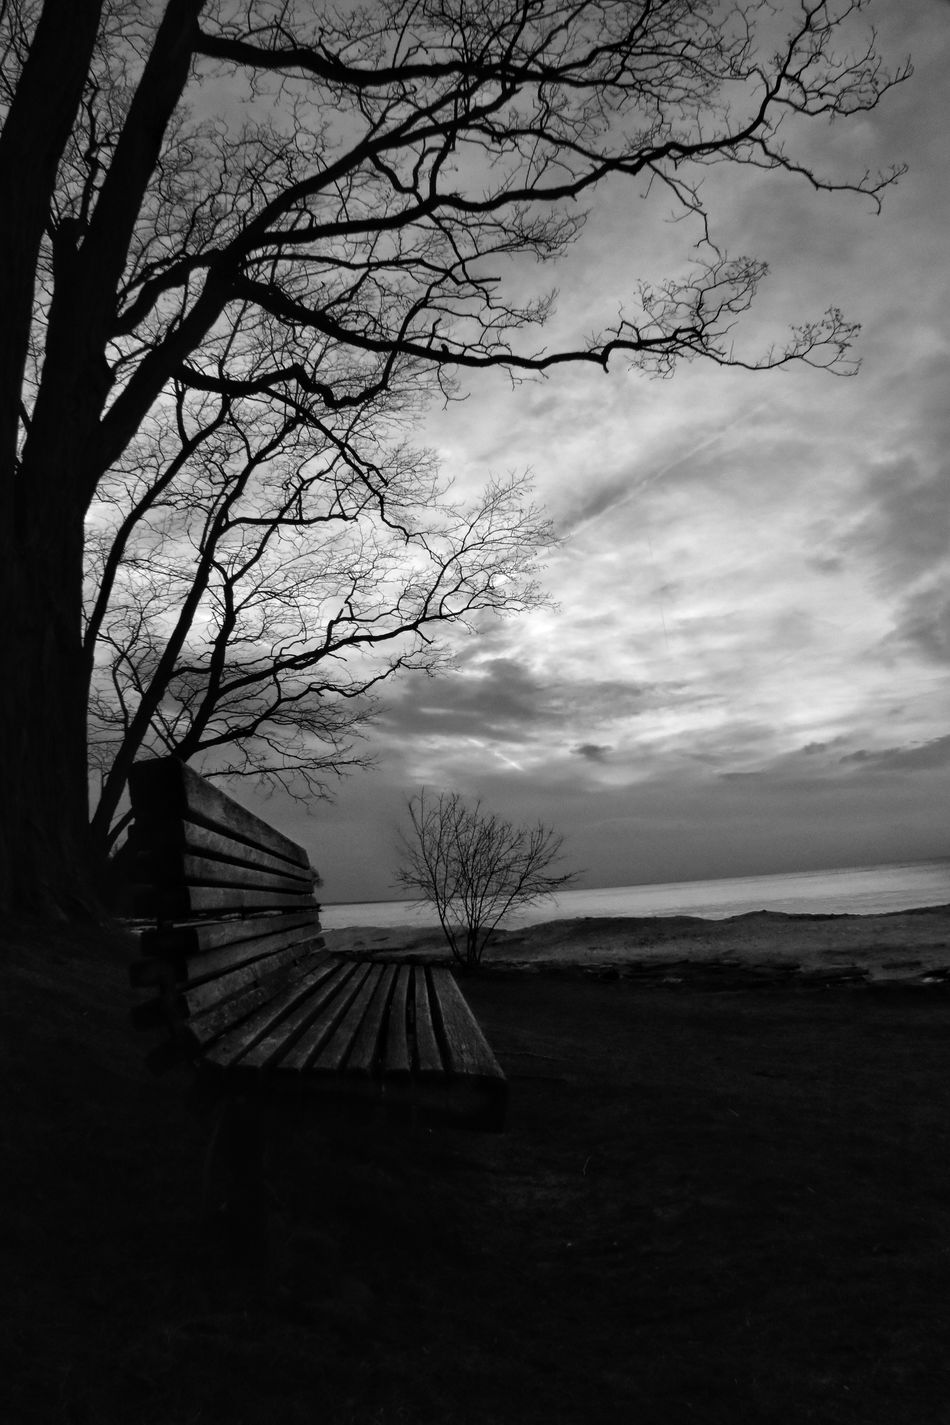 A Monochrome Monday and Treegasmic Tuesday all rolled into one ... what the heck, lets throw in a Not Park Bench Thursday ... Tree Nature Sky Tranquility Tranquil Scene Beauty In Nature Outdoors Silhouette No People Scenics Bare Tree Landscape Cloud - Sky Branch Day Bw_collection Fortheloveofblackandwhite Blackandwhite